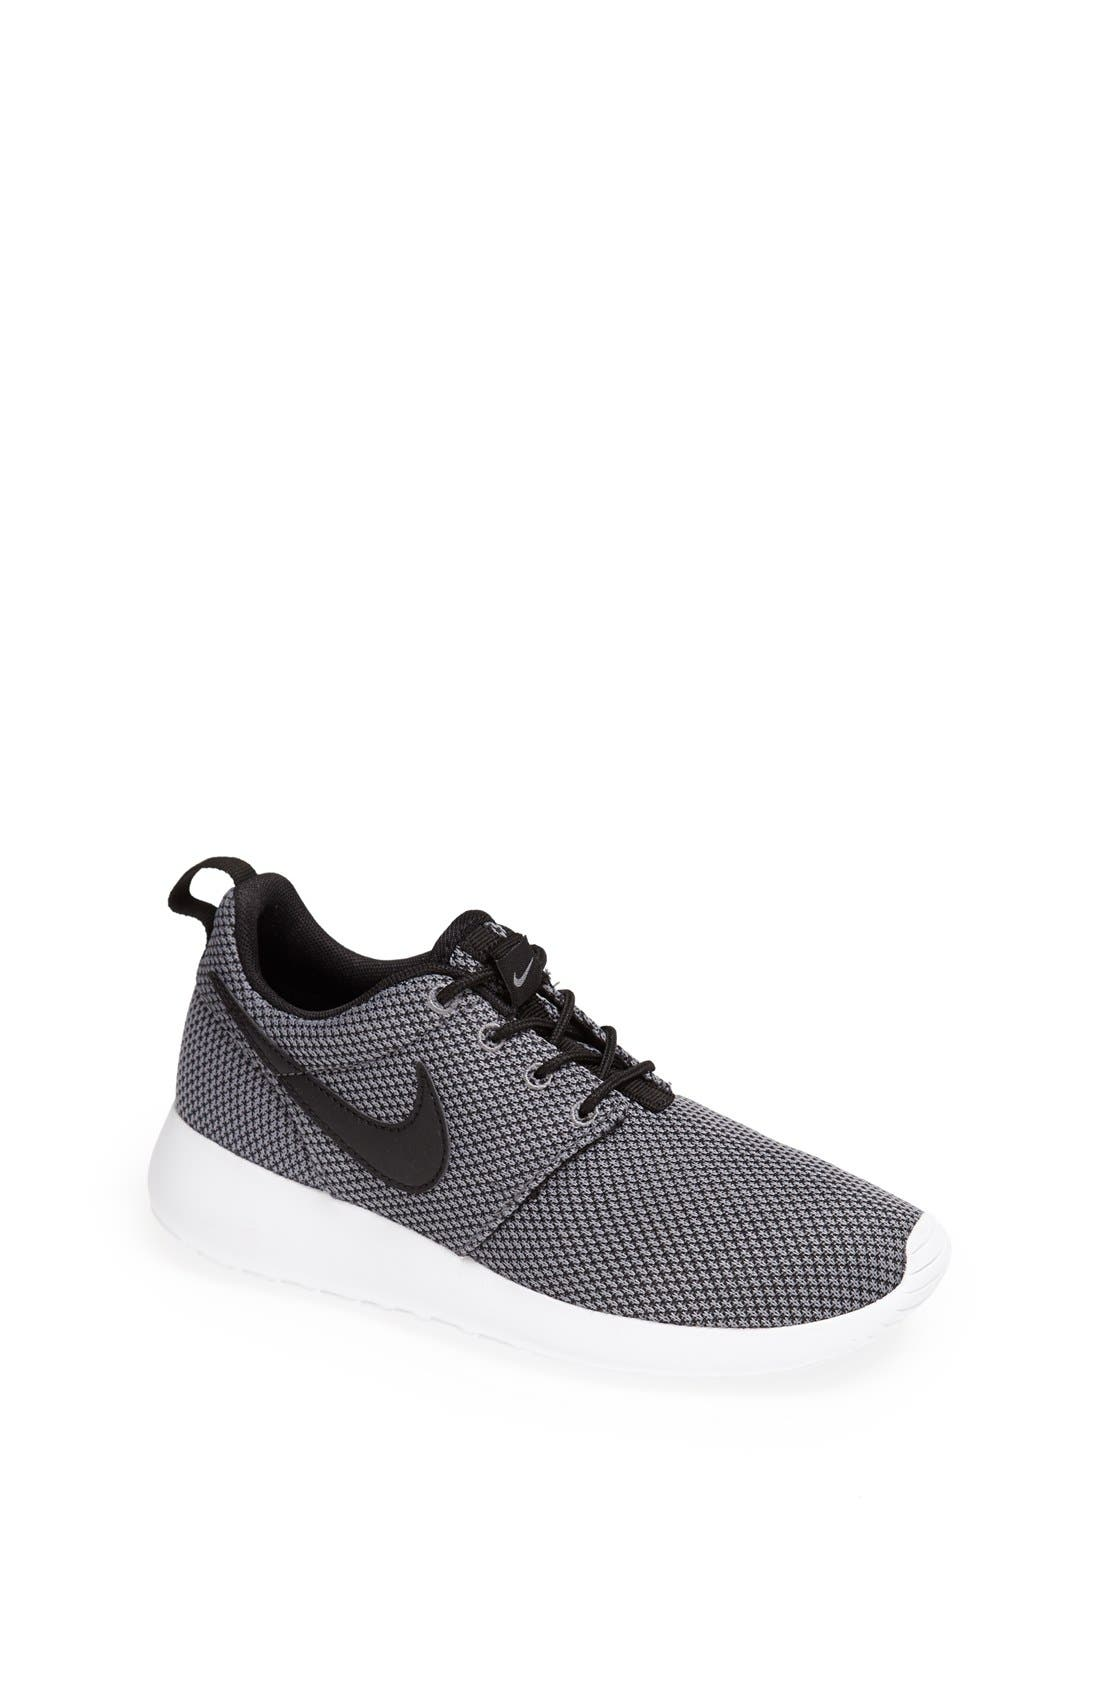 'Roshe Run' Sneaker,                             Main thumbnail 21, color,